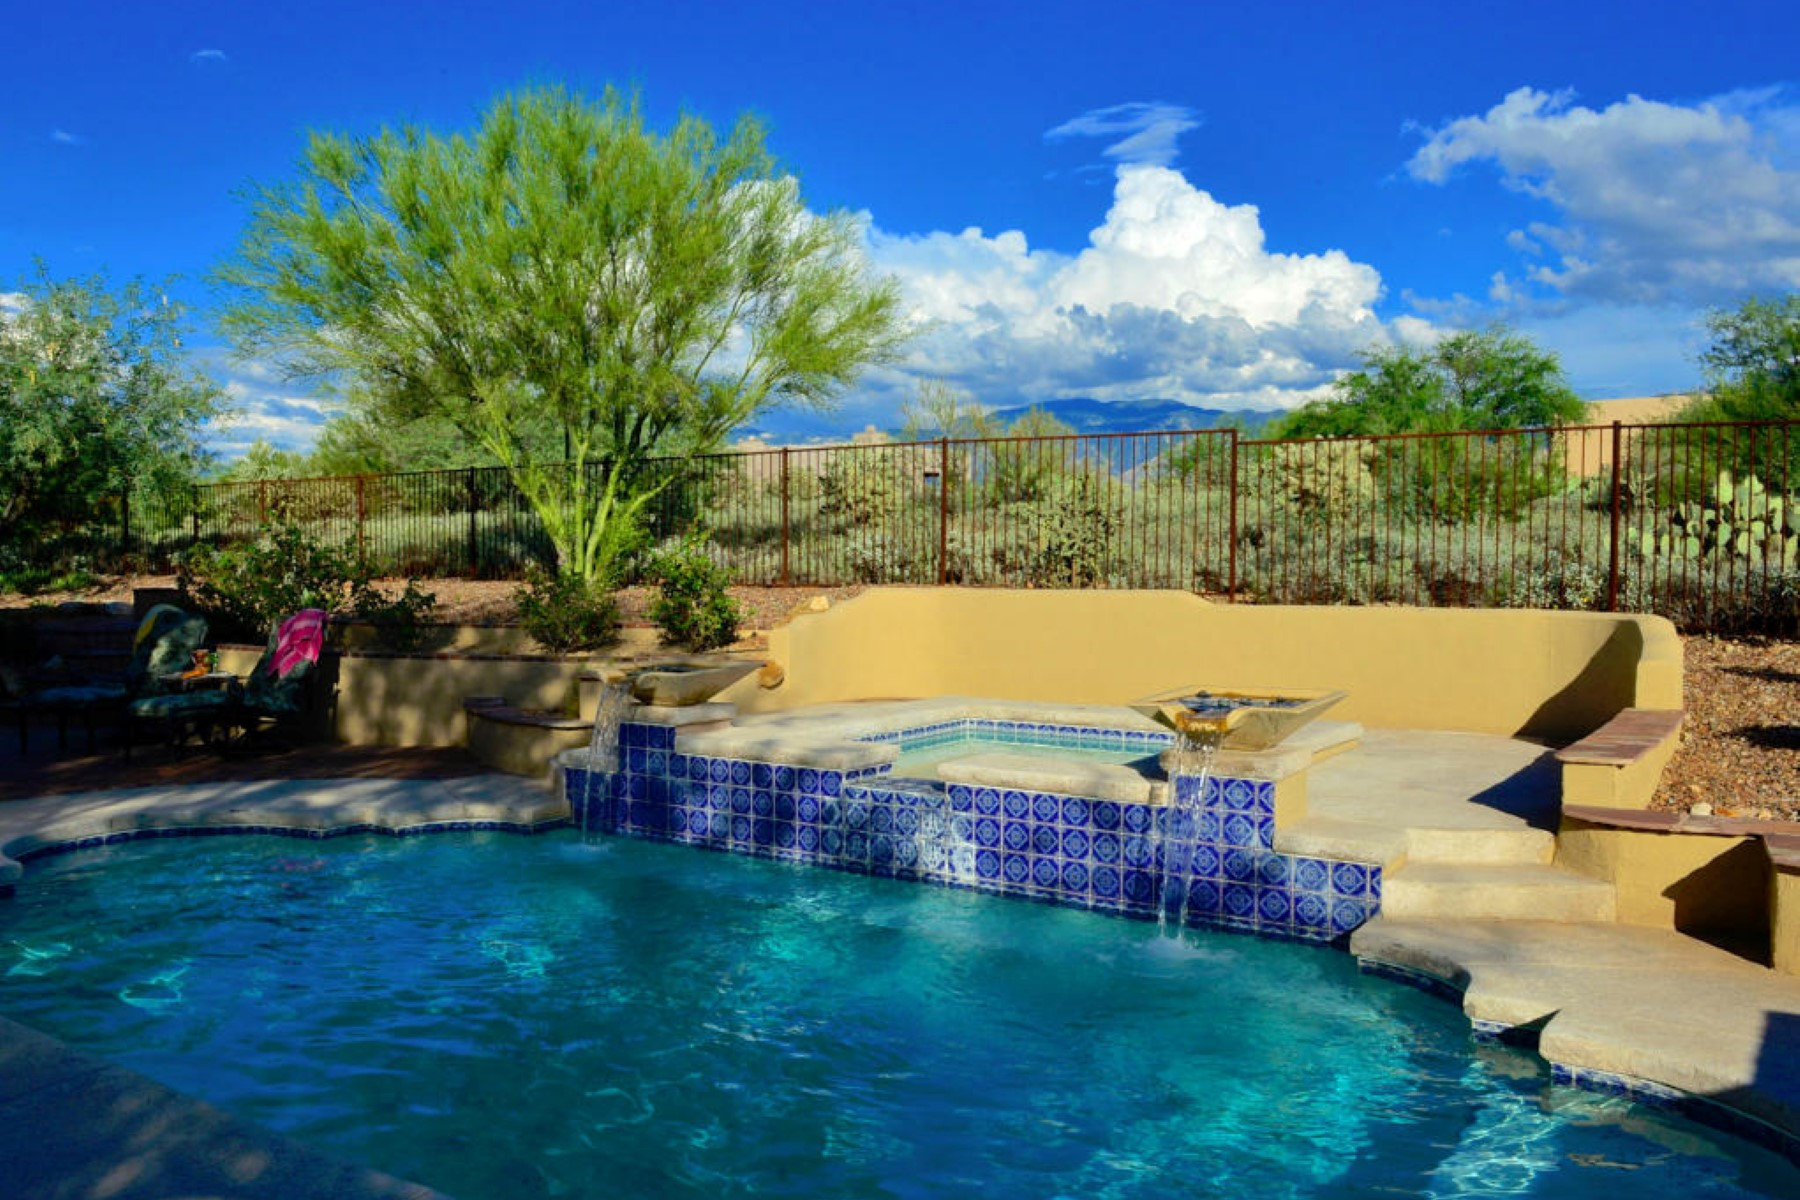 Single Family Home for Sale at Scenic, Peaceful And Gorgeous Private Home On 1.28 Acres In Gated Coyote Ridge 12316 N Cloud Ridge Drive Oro Valley, Arizona 85755 United States